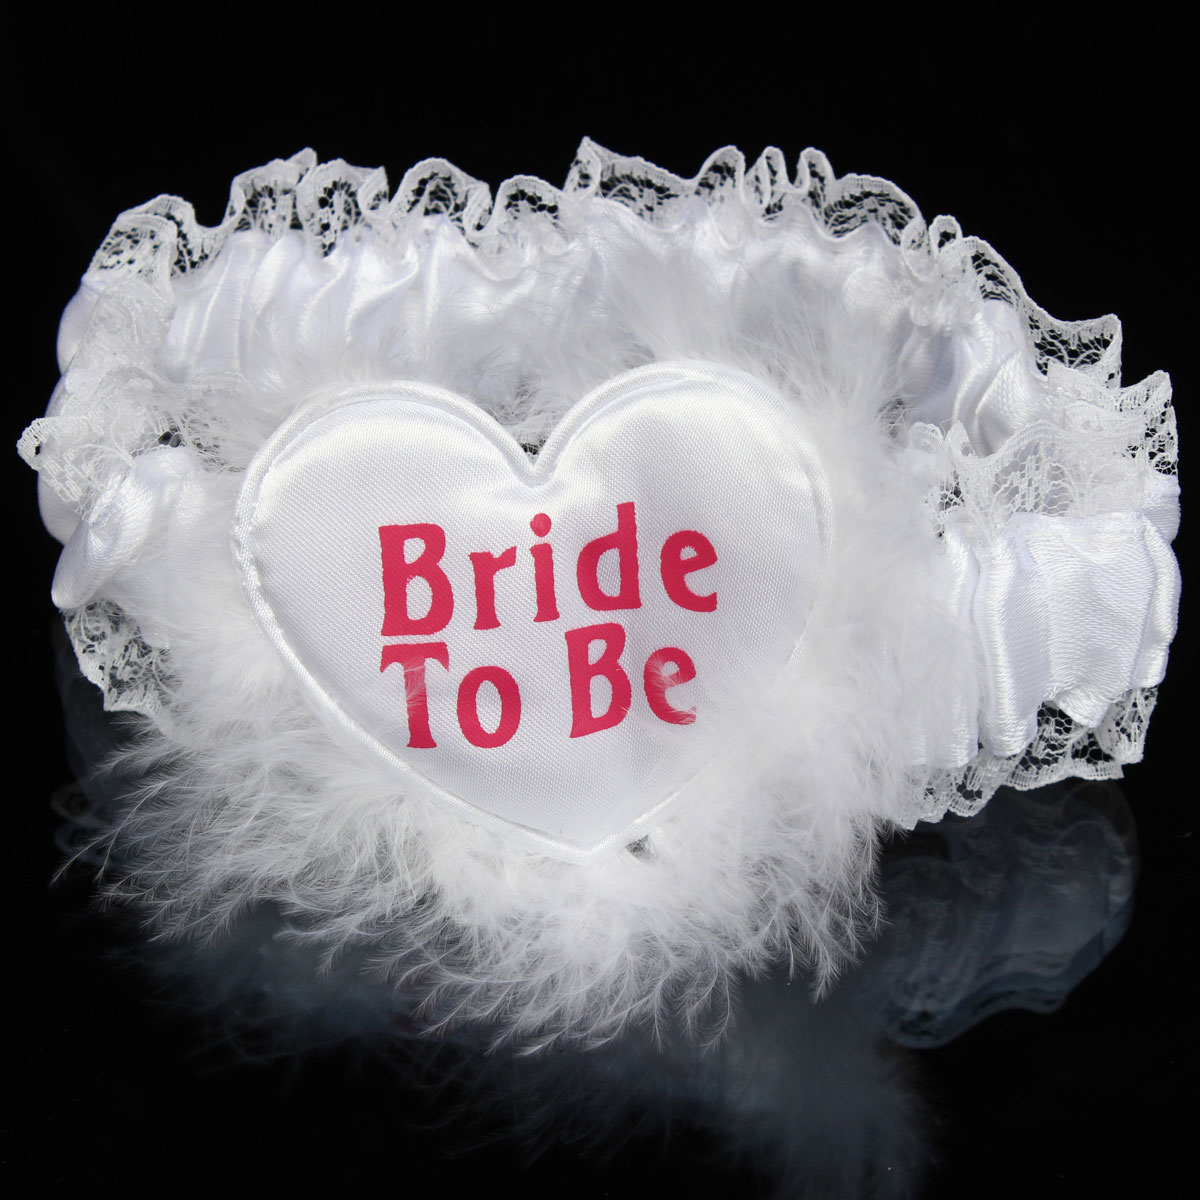 White Bride to Be Garter Sash Veil Badge Rosette Bachelorette Party Hen Night Wedding Accessories